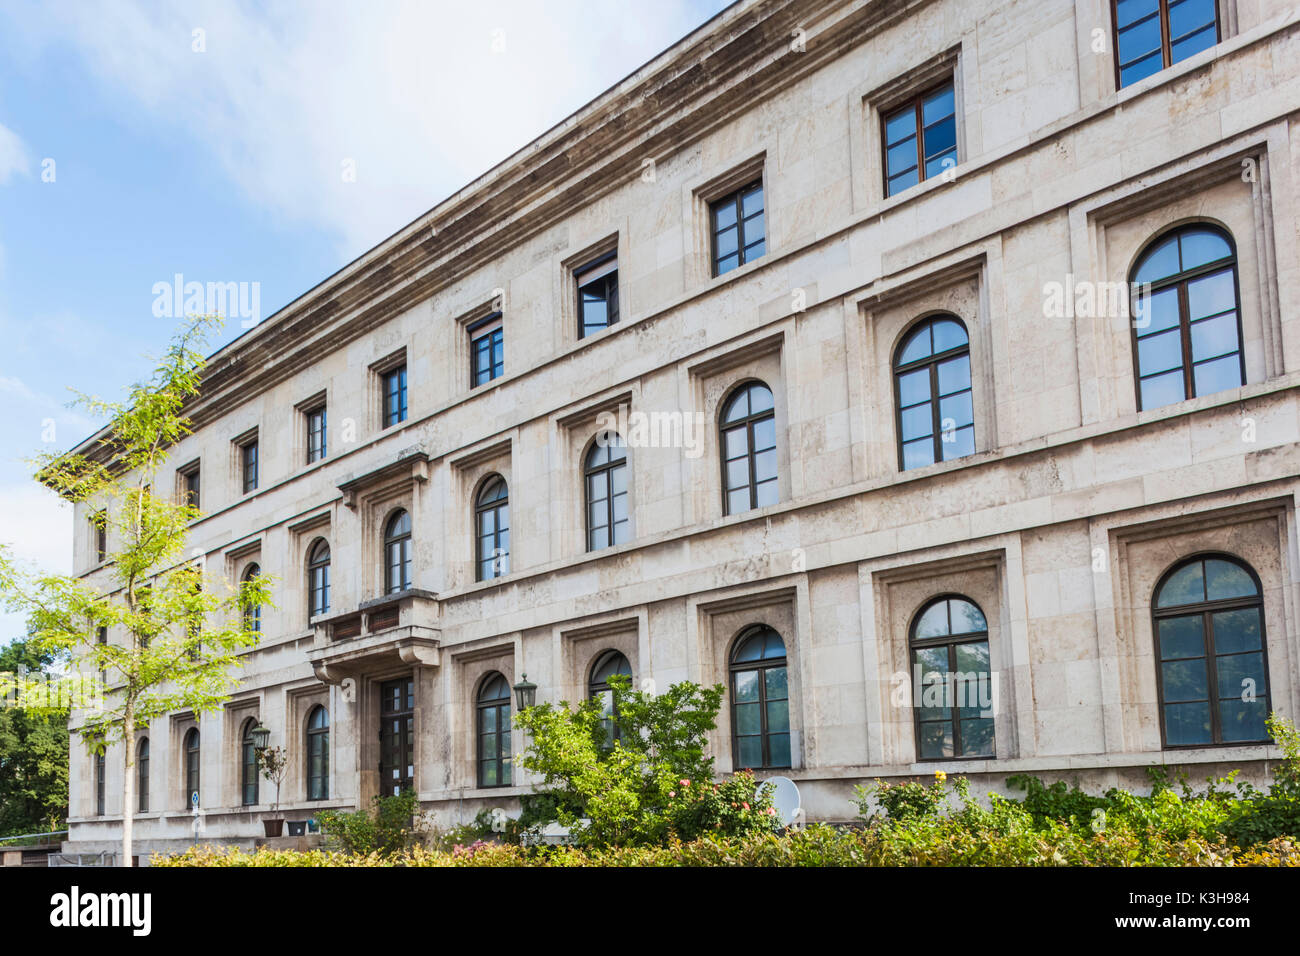 Germany, Bavaria, Munich, The 'Brown House', former Headquarters of the National Socialist German Workers Party aka Nazi Party - Stock Image